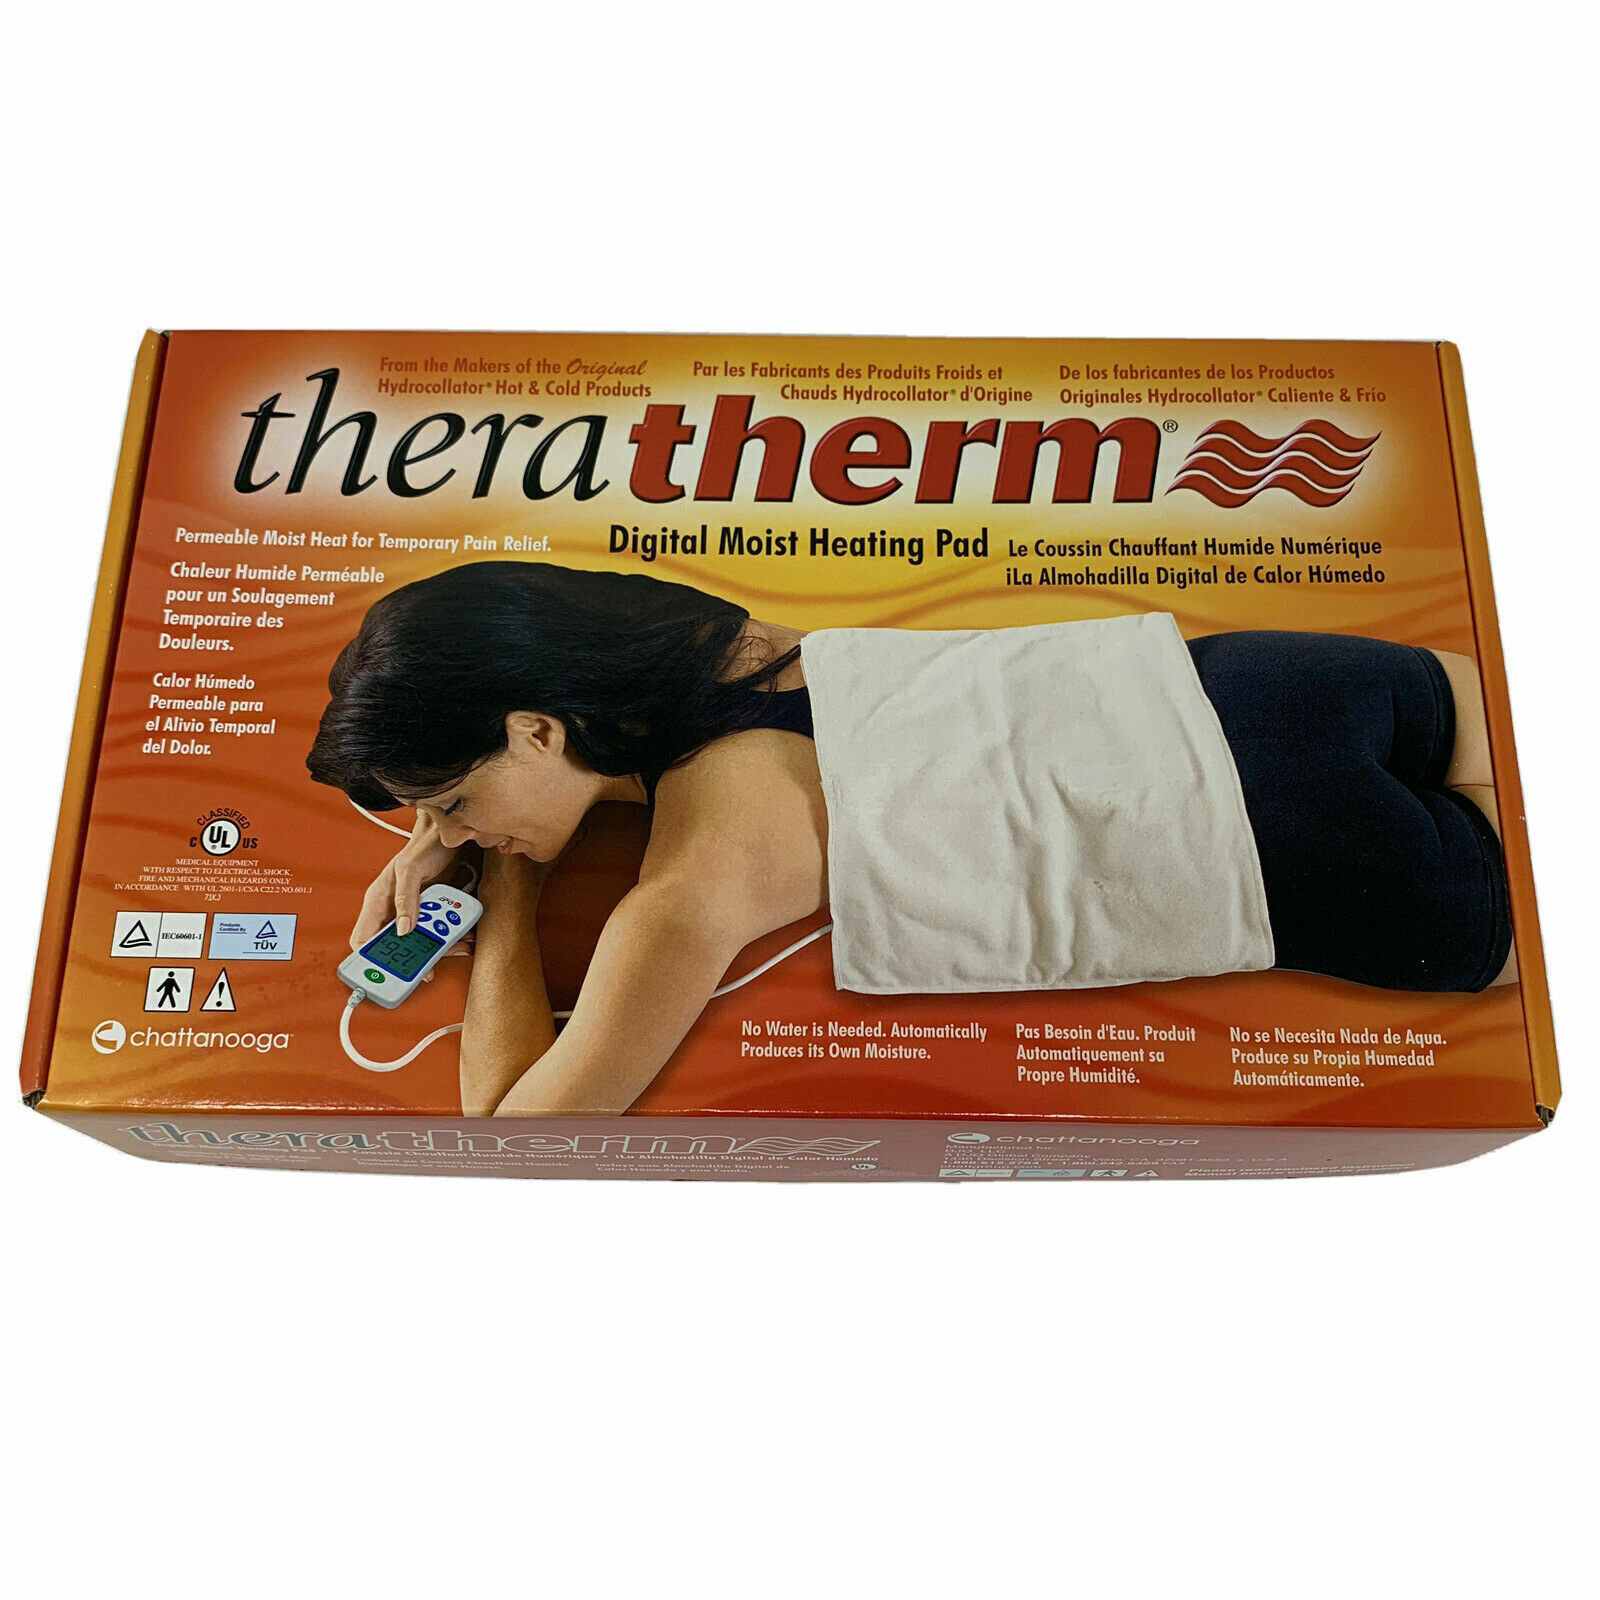 Chattanooga Theratherm Digital Moist Heating Pad, Large/Stan